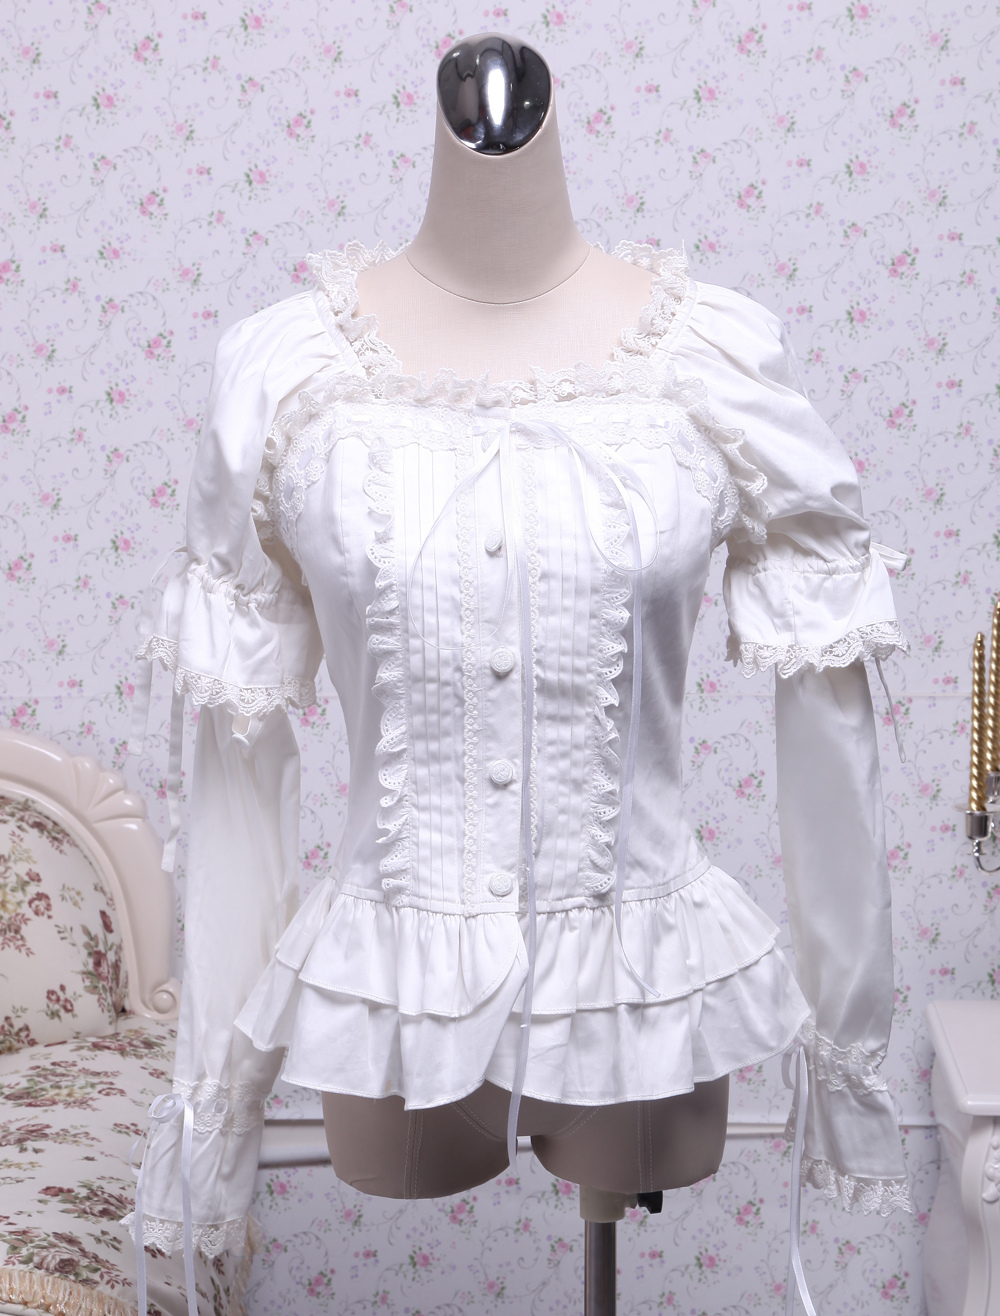 White Cotton Lolita Blouse Long Sleeves Square Neck Lace Trim Layered Ruffles Lace Bow